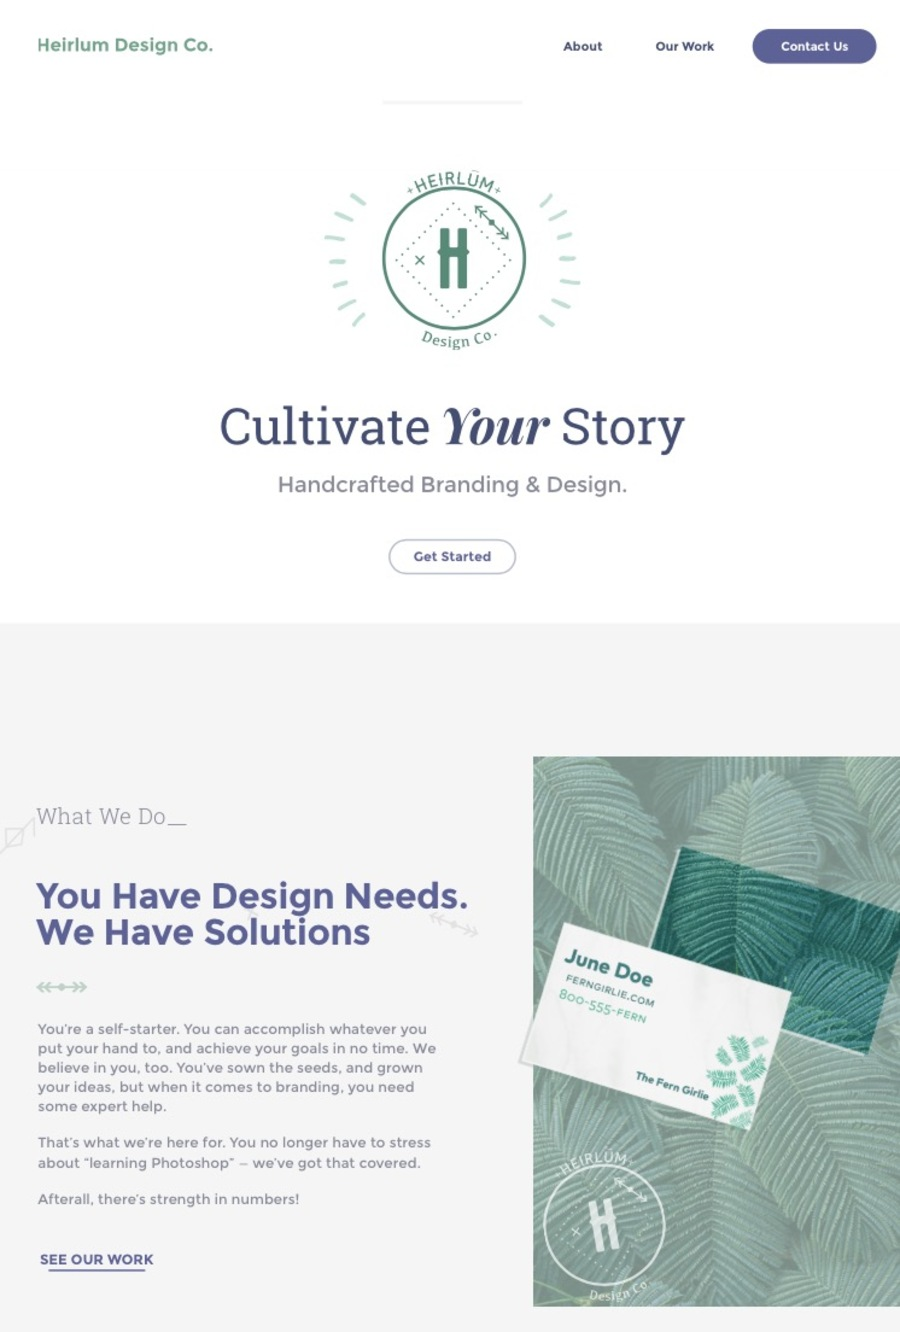 A great web design by Heirlūm Design Co., Chattanooga, TN: